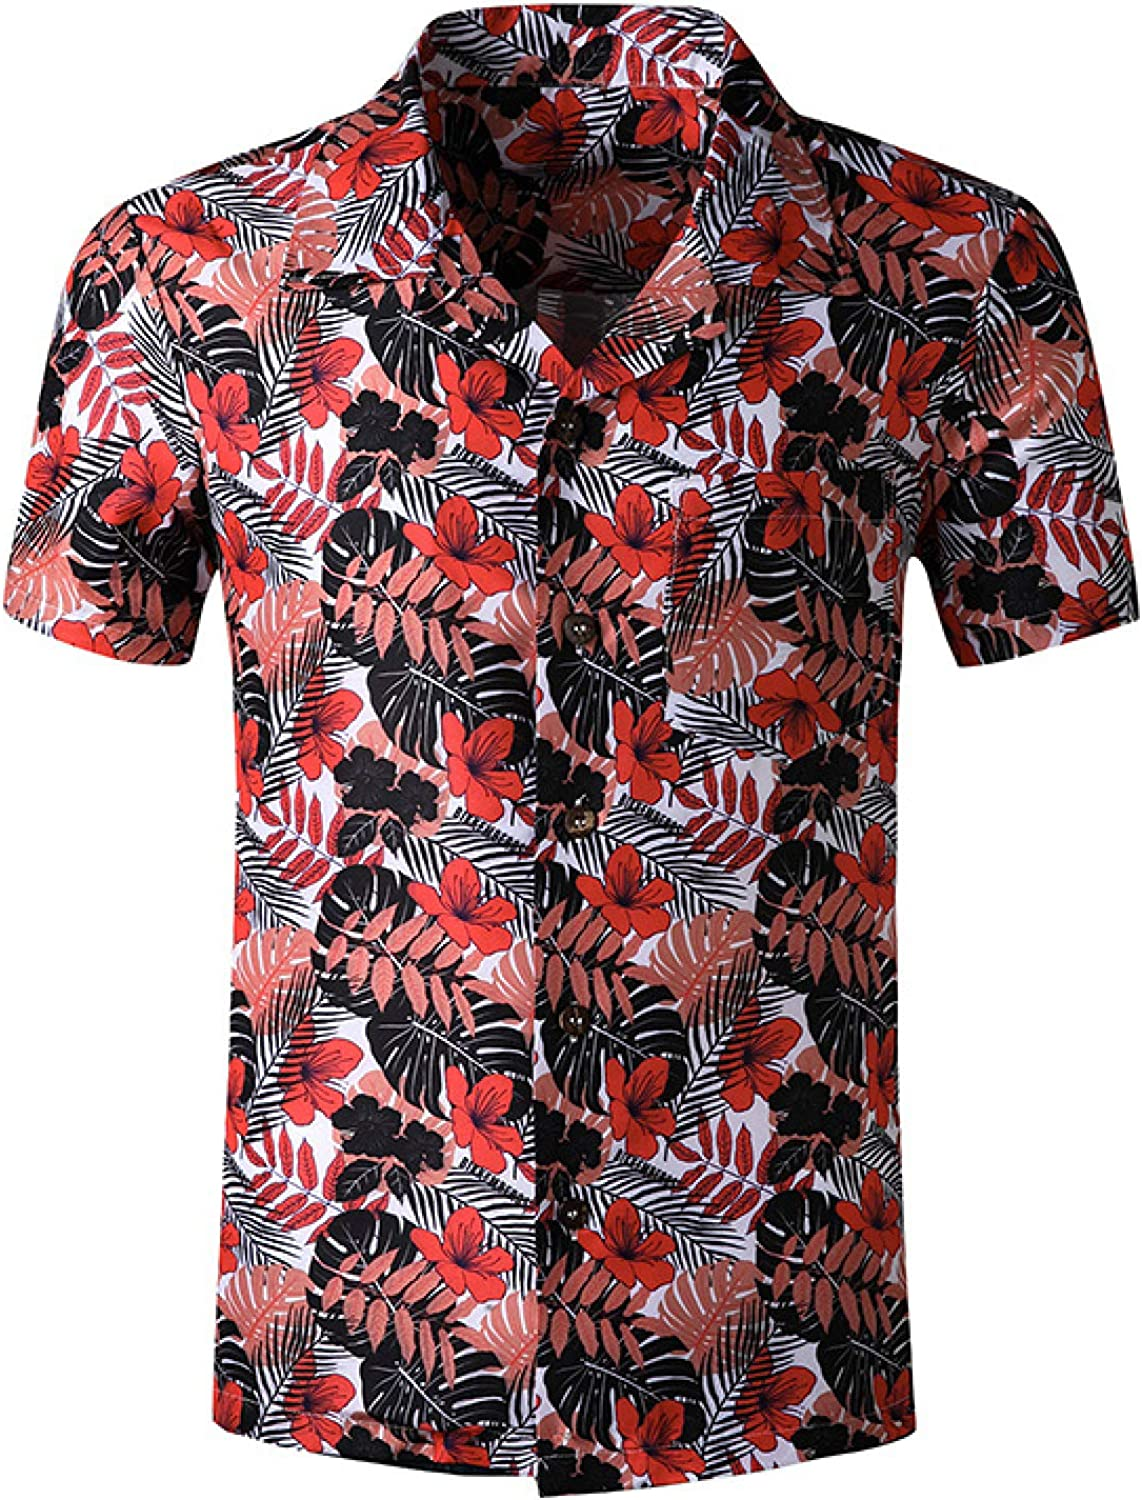 Luandge Men's Personality Printed Same day shipping Beach Tren Fashion Loose Be super welcome Shirt